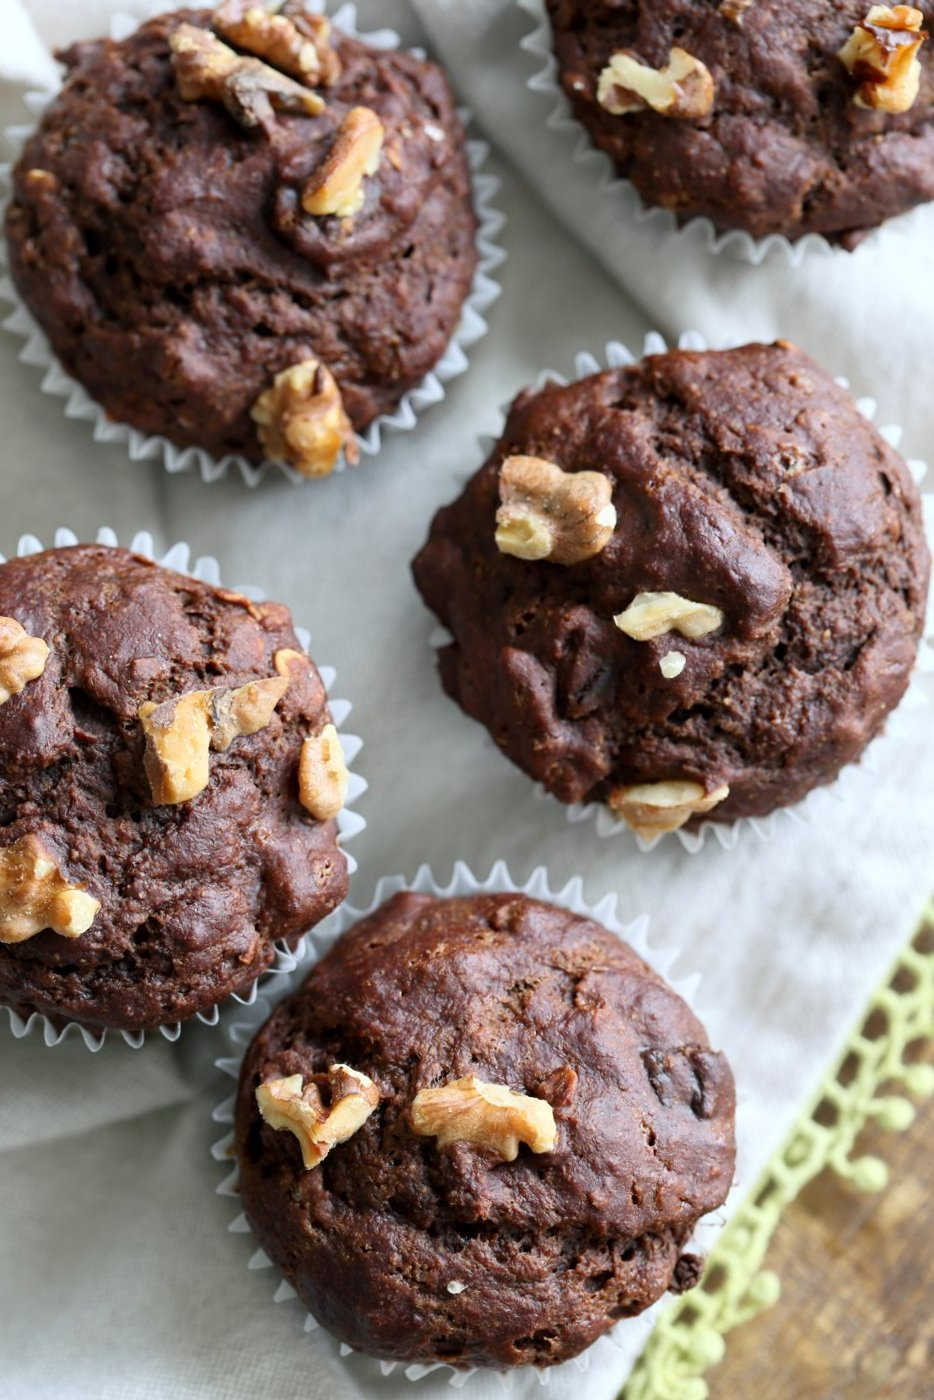 Peanut Butter Chocolate Banana Muffins 1 Bowl / Blender. No Added oil in these tall muffins. Easy 1 Bowl Chocolate Banana Muffins. #Vegan #Soyfree #Recipe #veganricha #Glutenfree option | VeganRicha.com